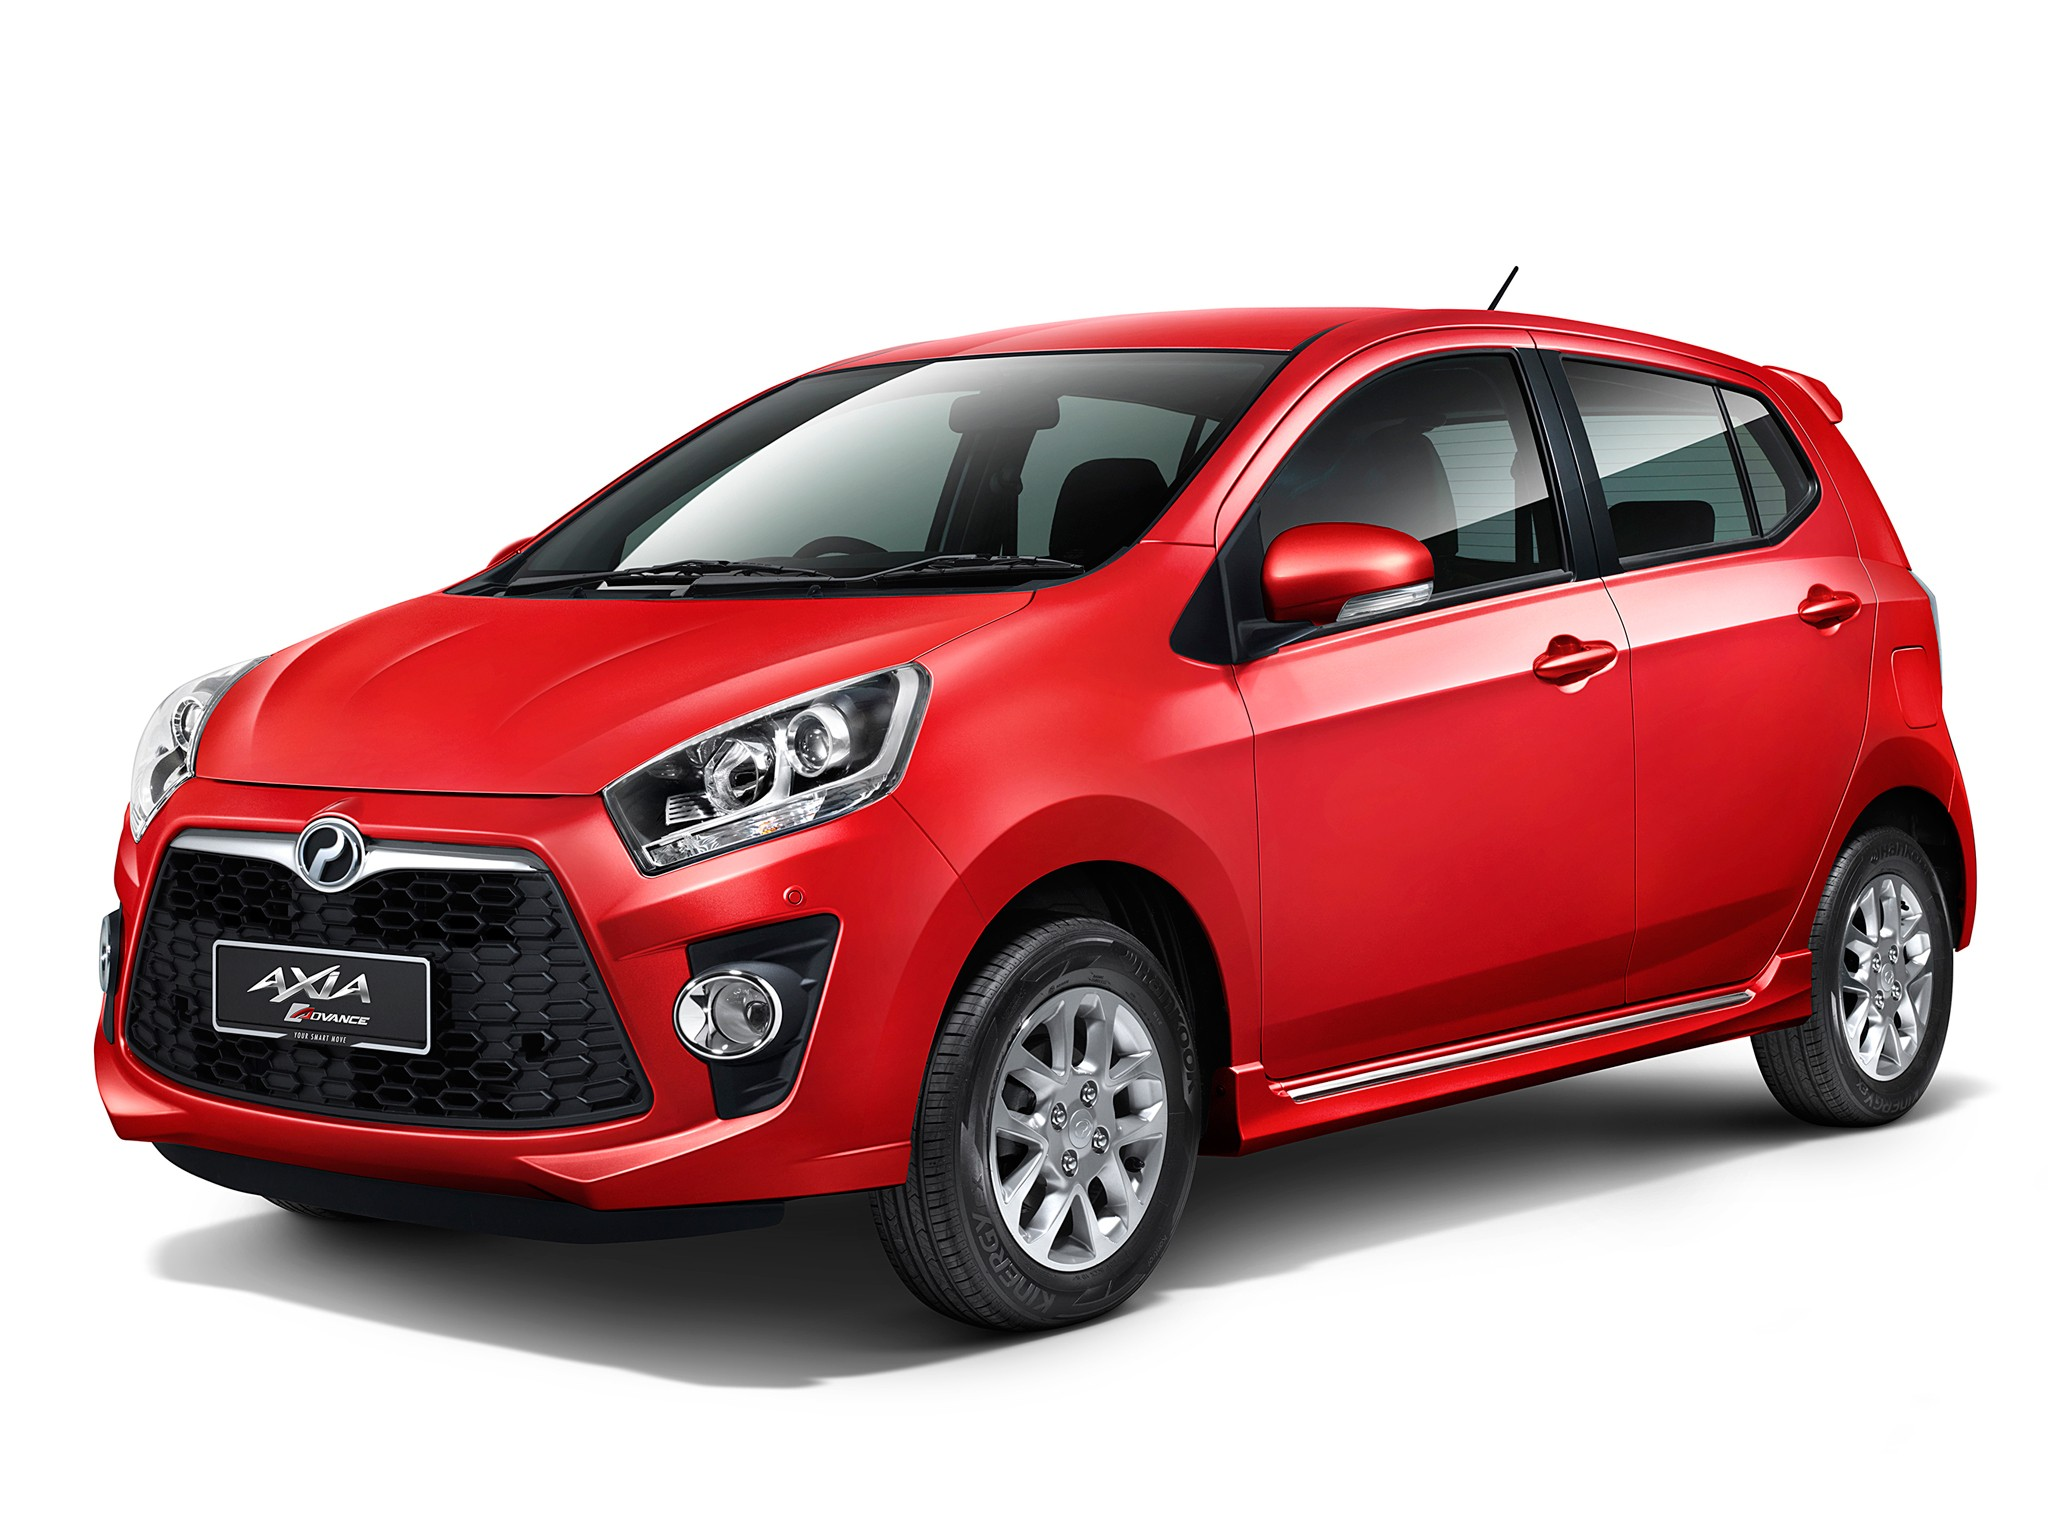 Perodua Axia Specs Photos 2014 2015 2016 2017 2018 2019 2020 Autoevolution